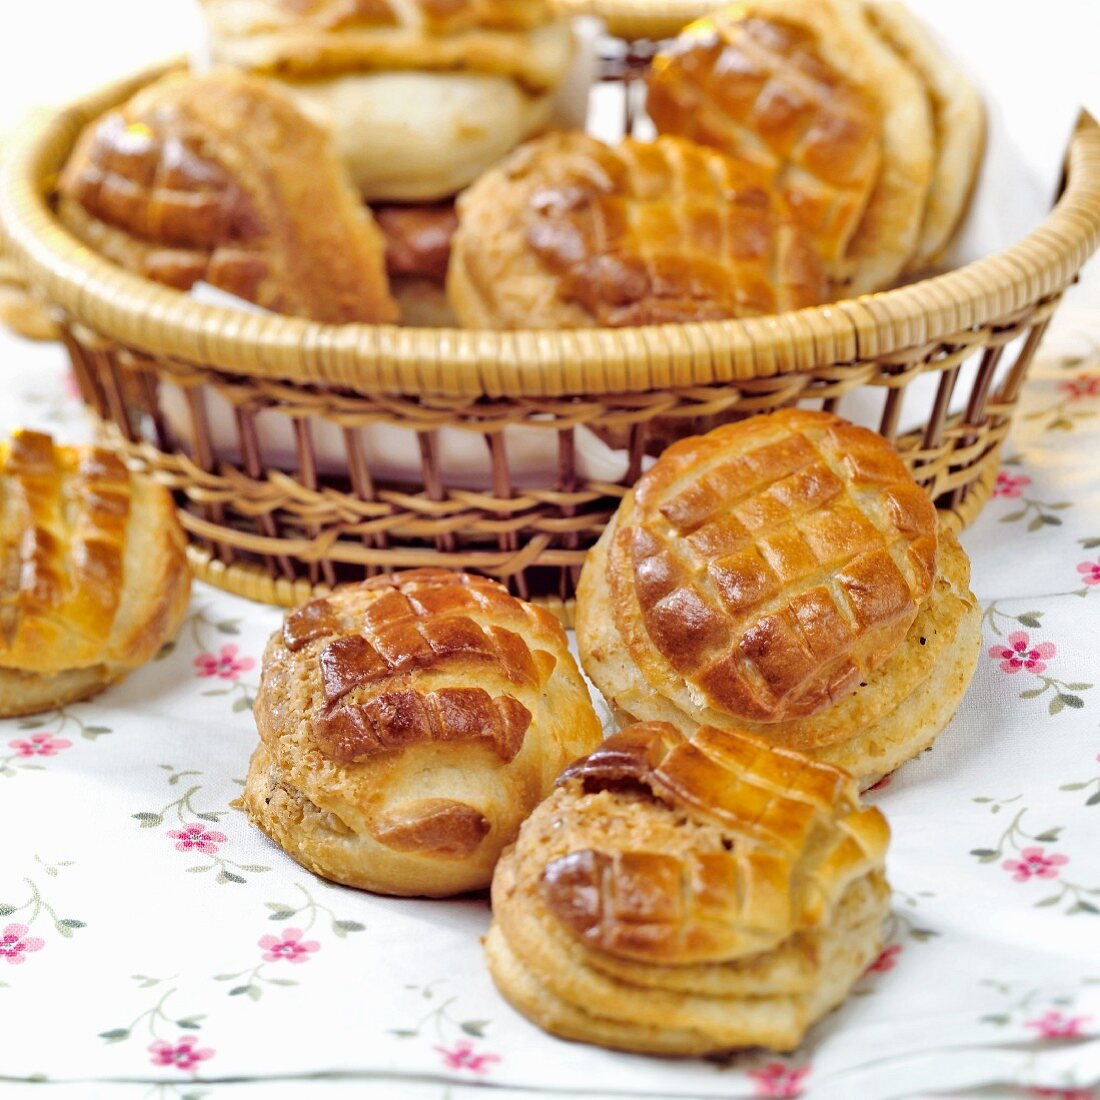 Pogácsa (small yeast pastries, Hungary) in bread basket